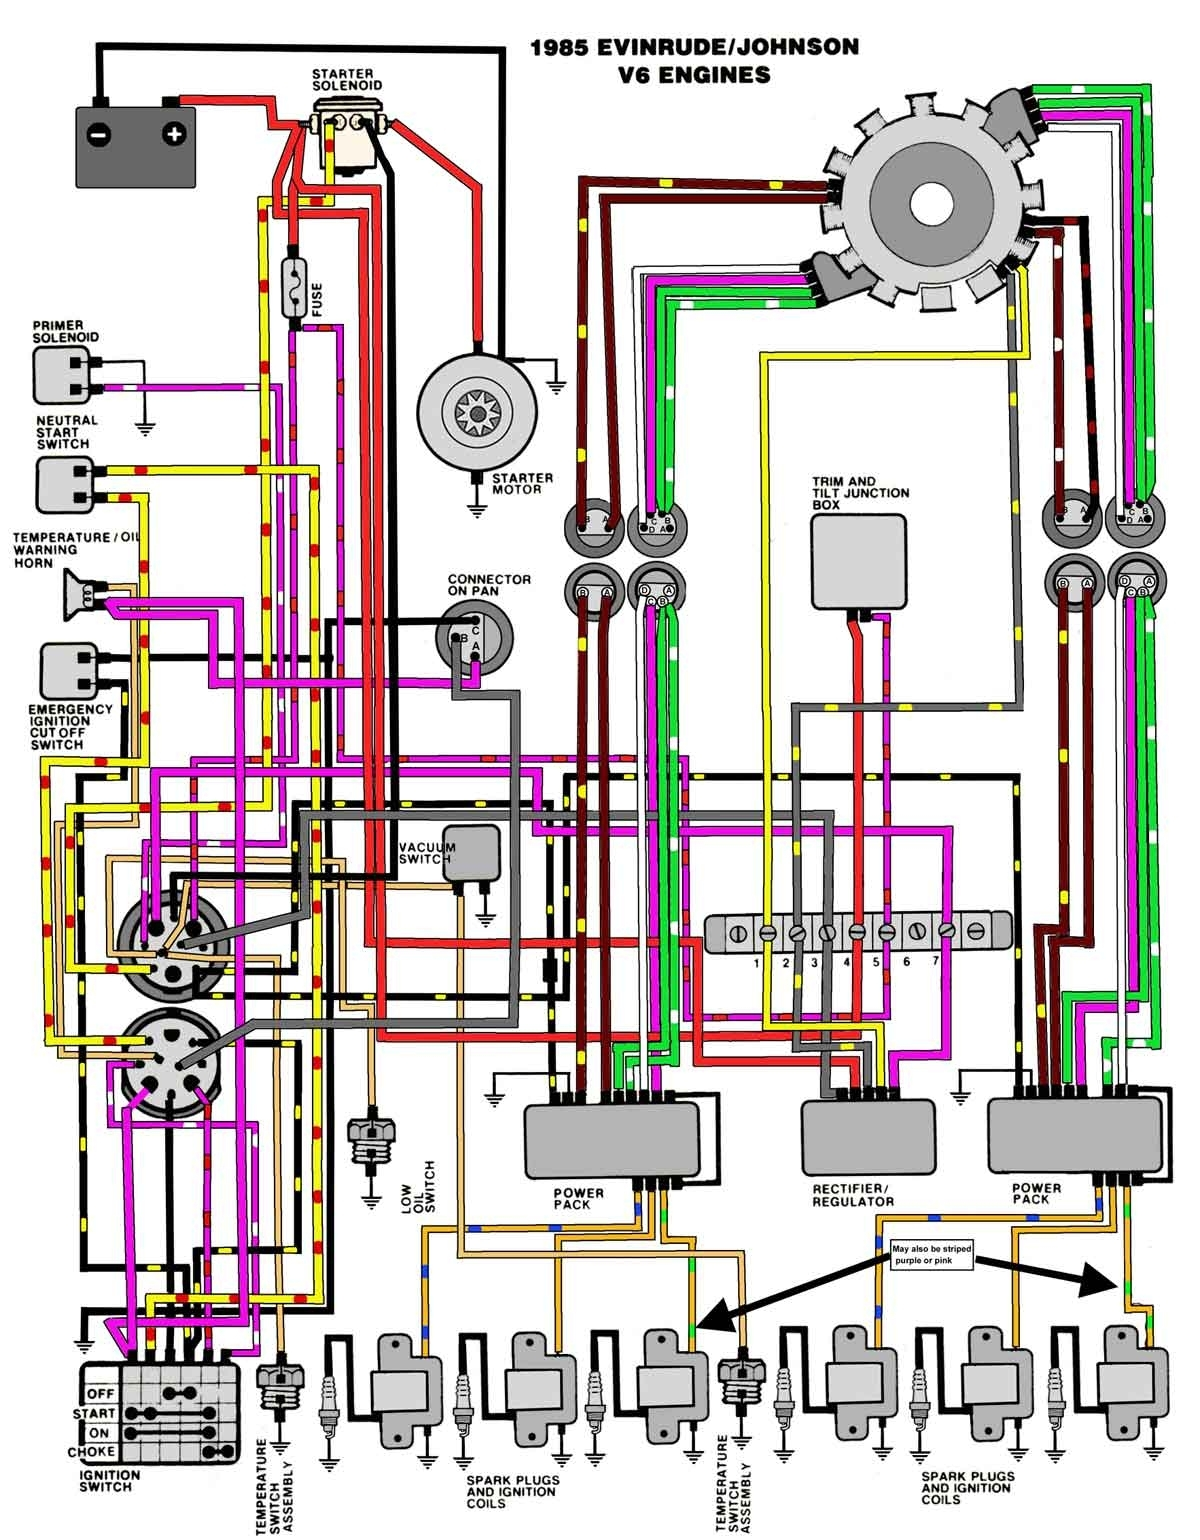 wrg 4500] evinrude engine diagramevinrude 28 spl ignition wiring diagram evinrude